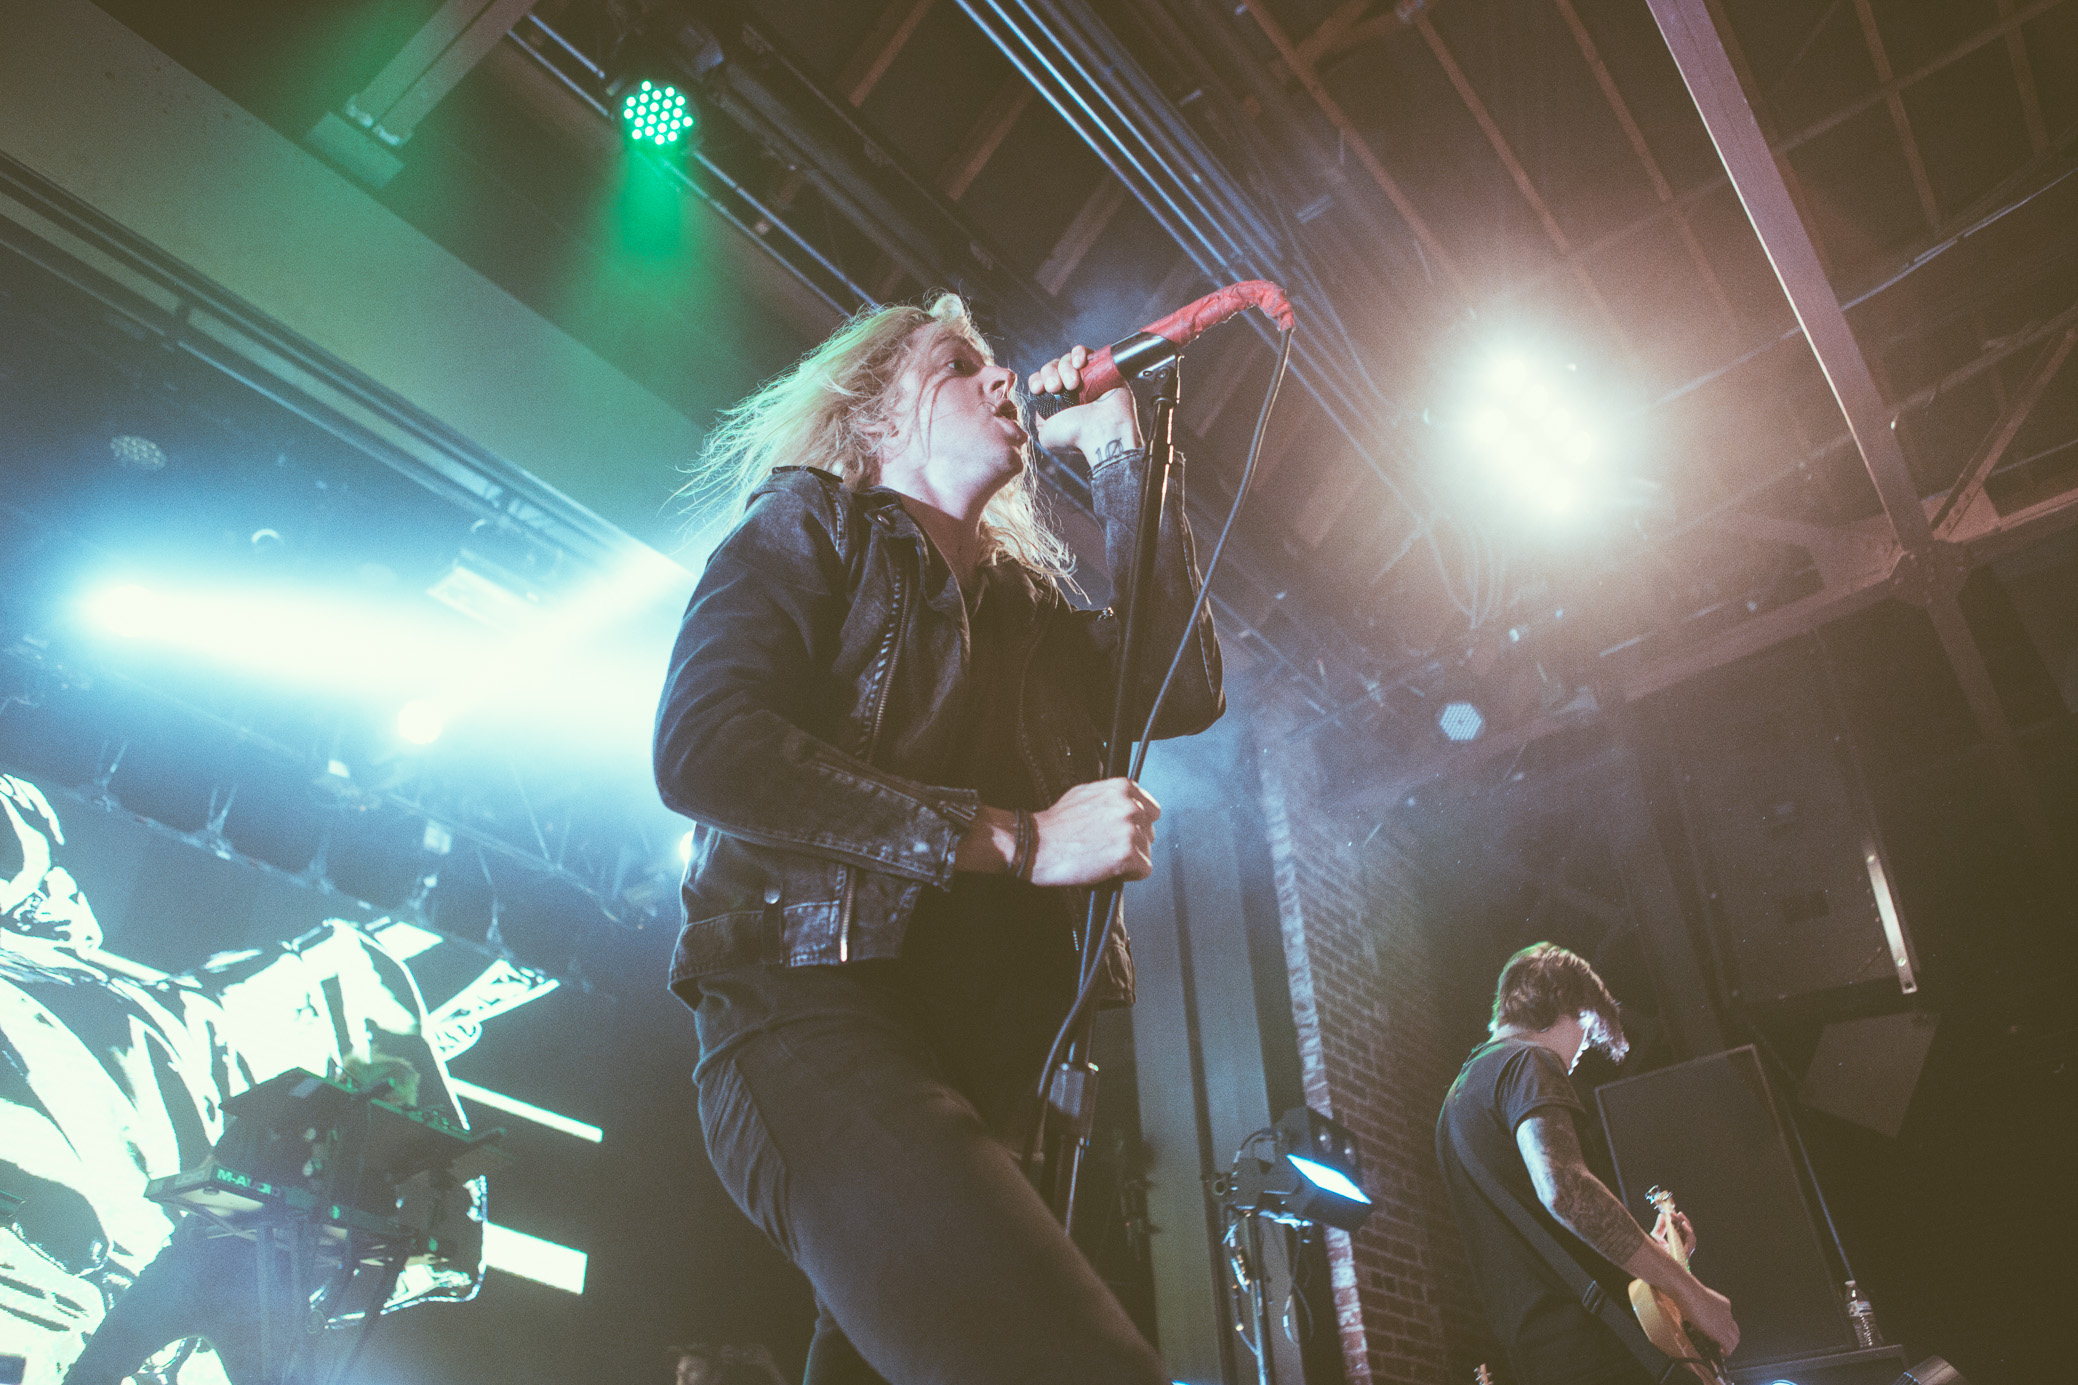 Underoath performs in concert at Iron City in Birmingham, Alabama on April 30th, 2018. (Photo by David A. Smith/DSmithScenes)